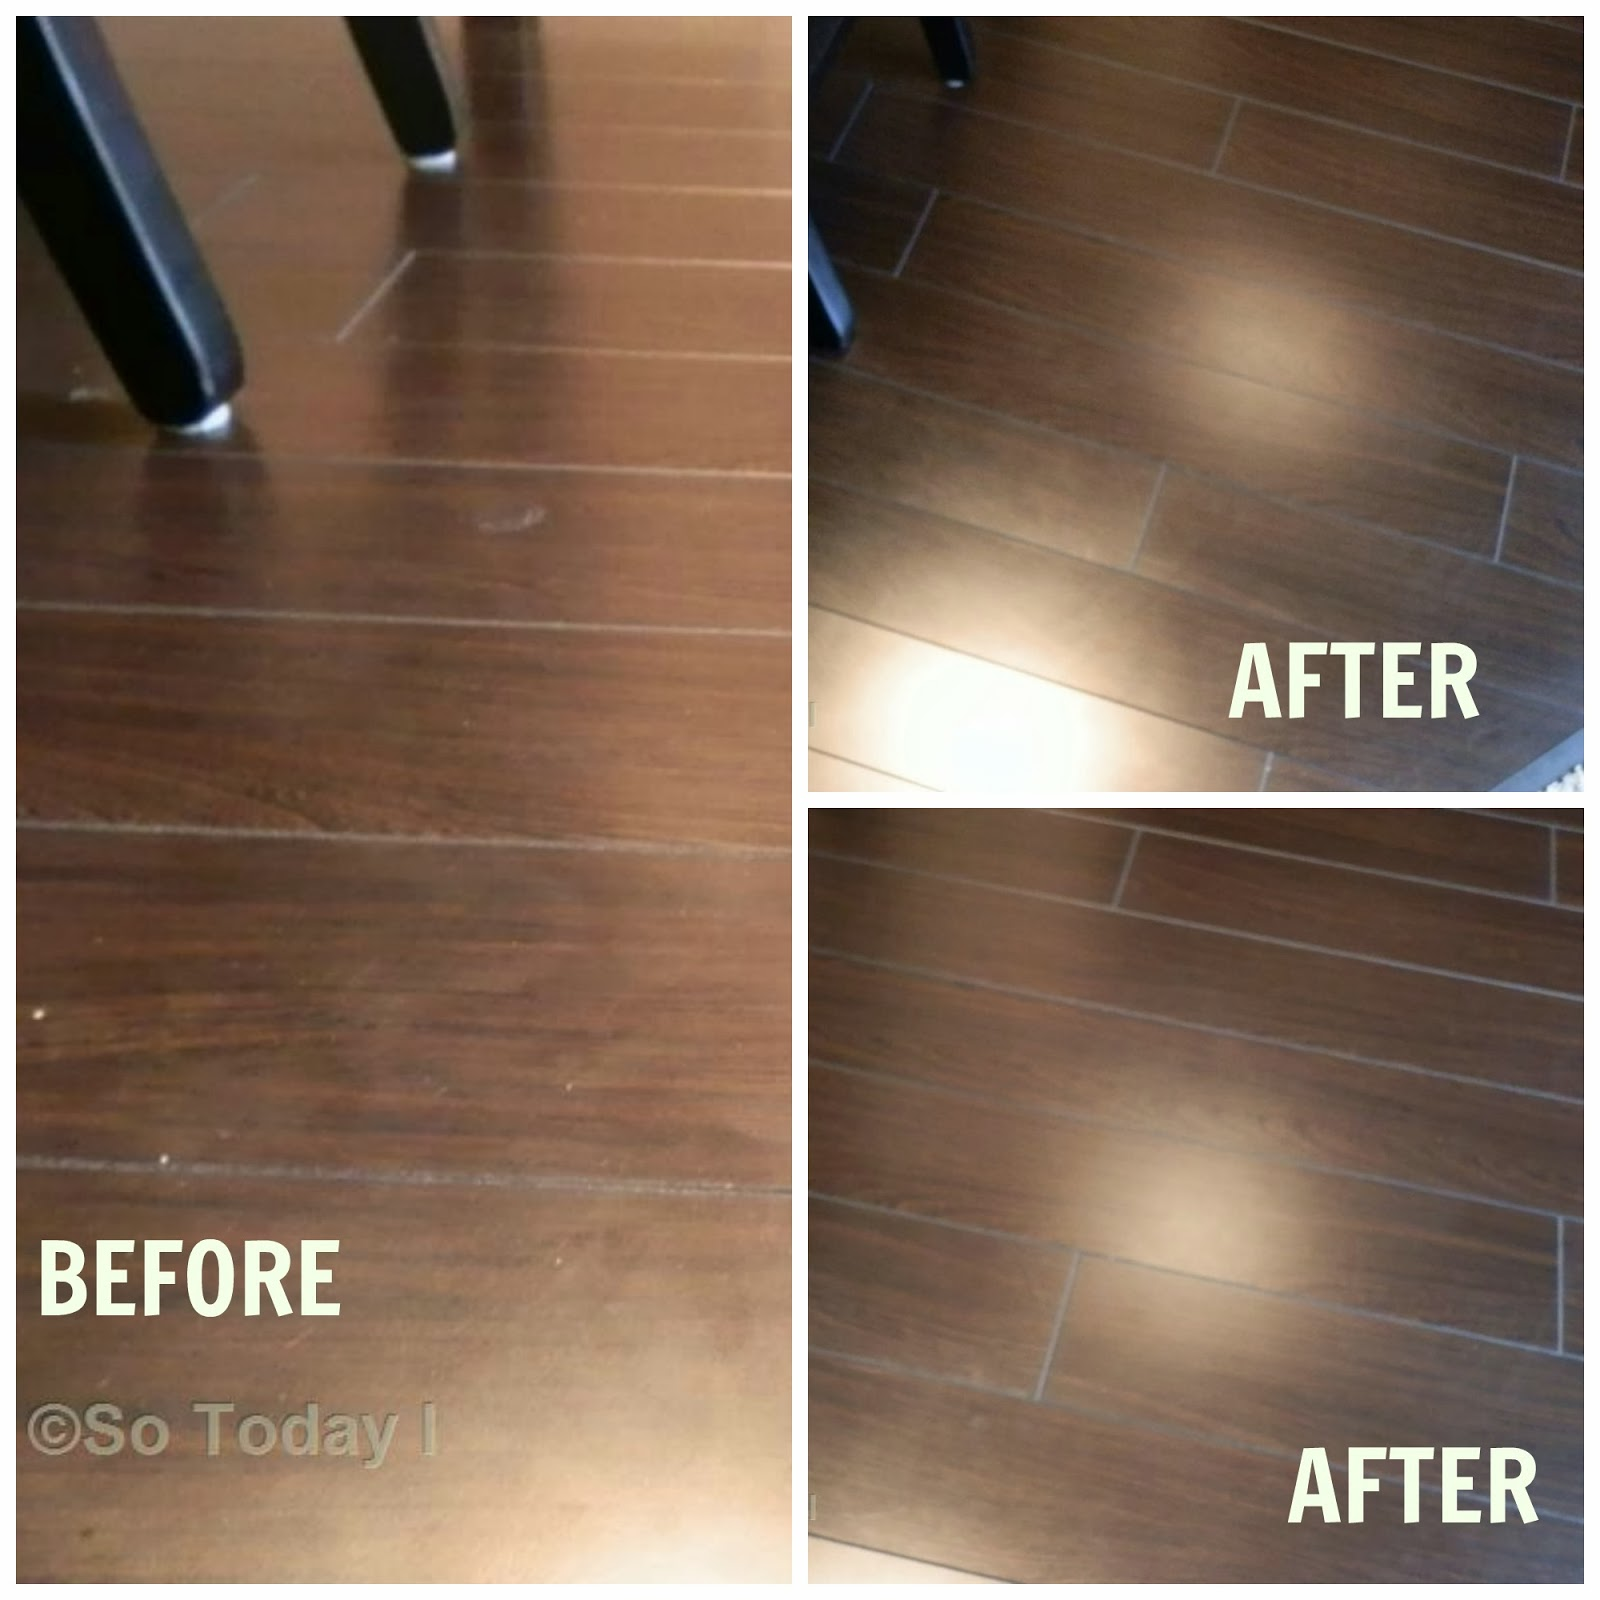 How to make wood floors shine naturally images home flooring design tile floor shine products image collections tile flooring design best way to clean shiny floor tiles dailygadgetfo Image collections